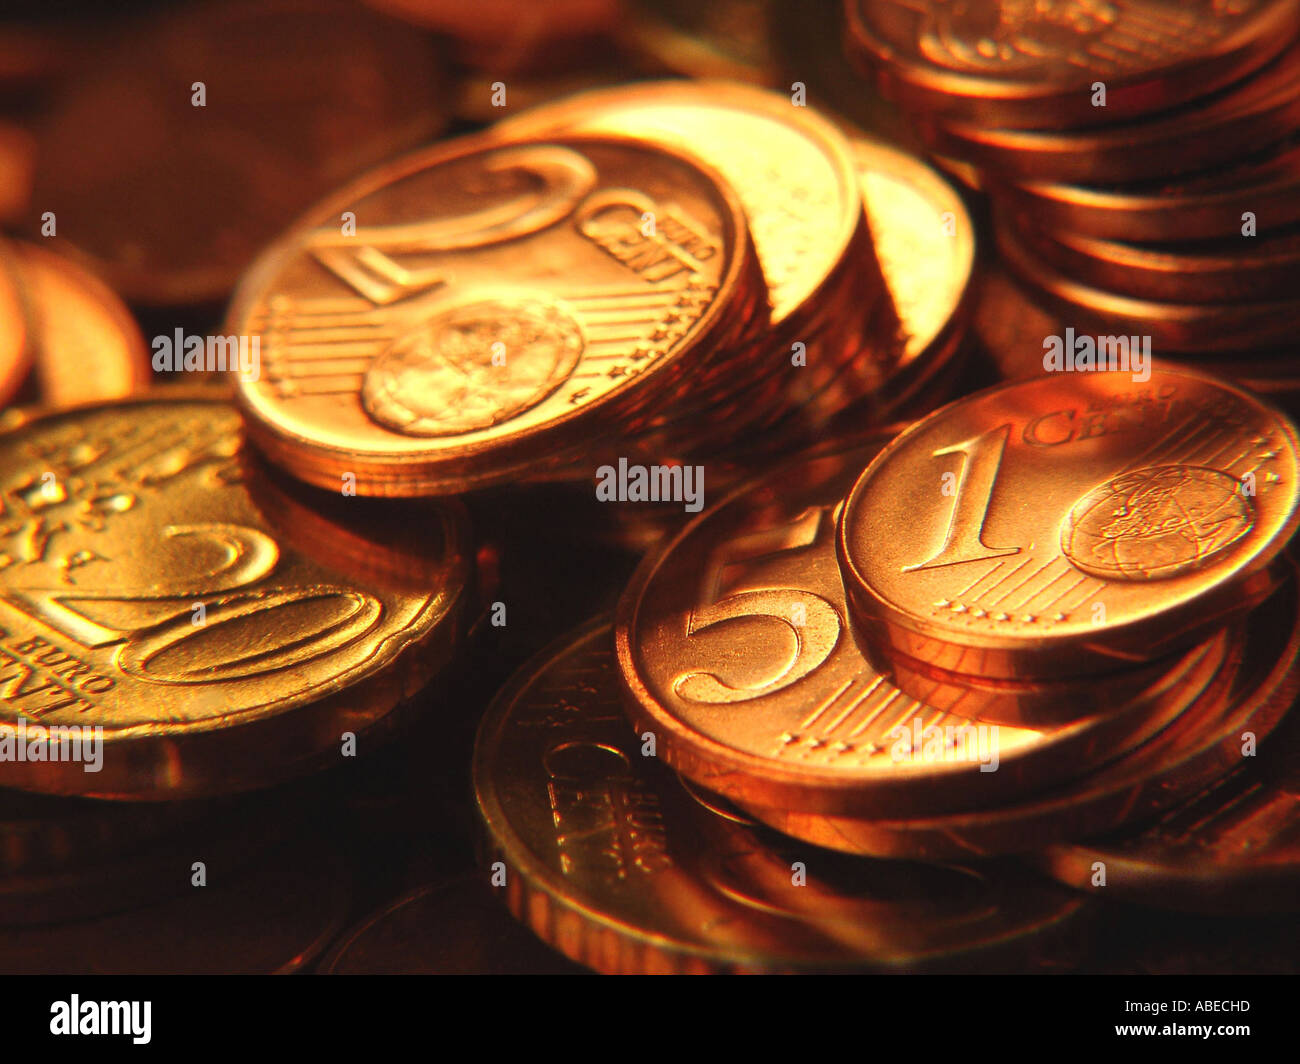 Euro-cent coins - Stock Image